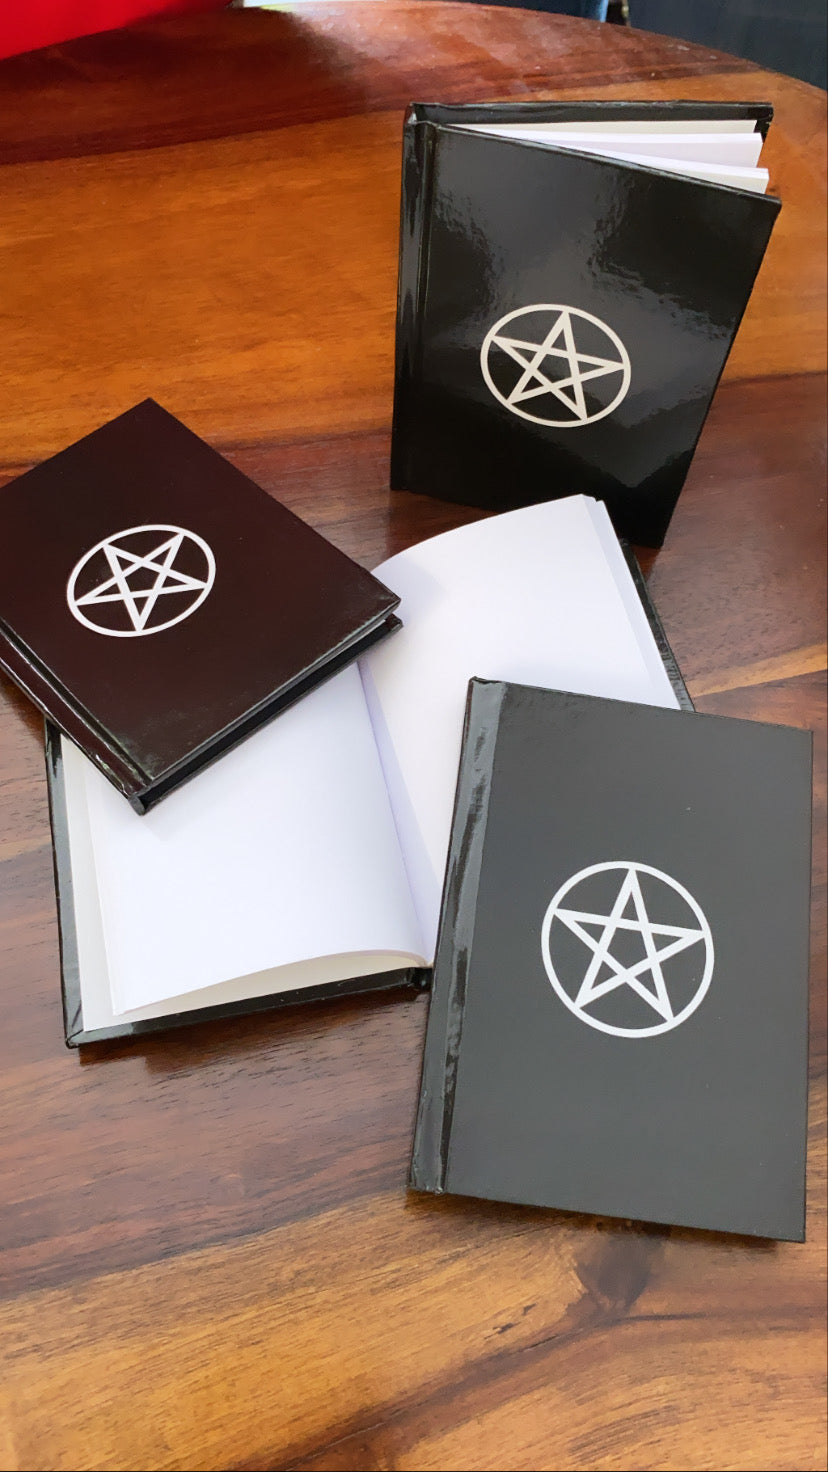 Pentagram Symbol Book - Spell Journal for Witchcraft - pentacle symbol Grimoire - Witchy small pocket size book - witch gifts - spell book